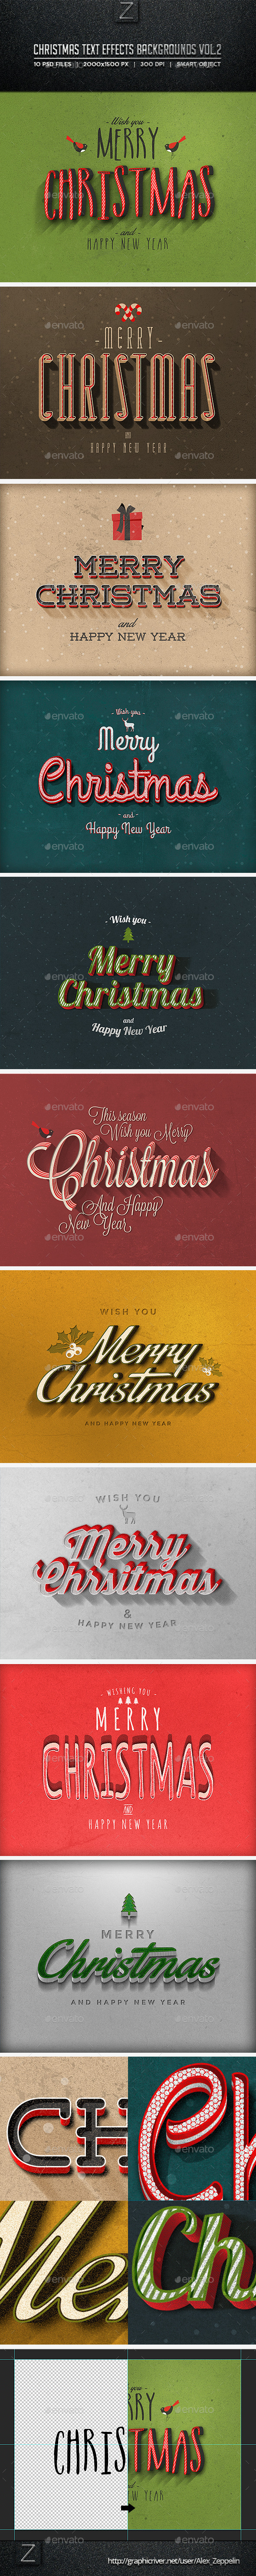 GraphicRiver Christmas Text Effects Backgrounds Vol.2 9545236